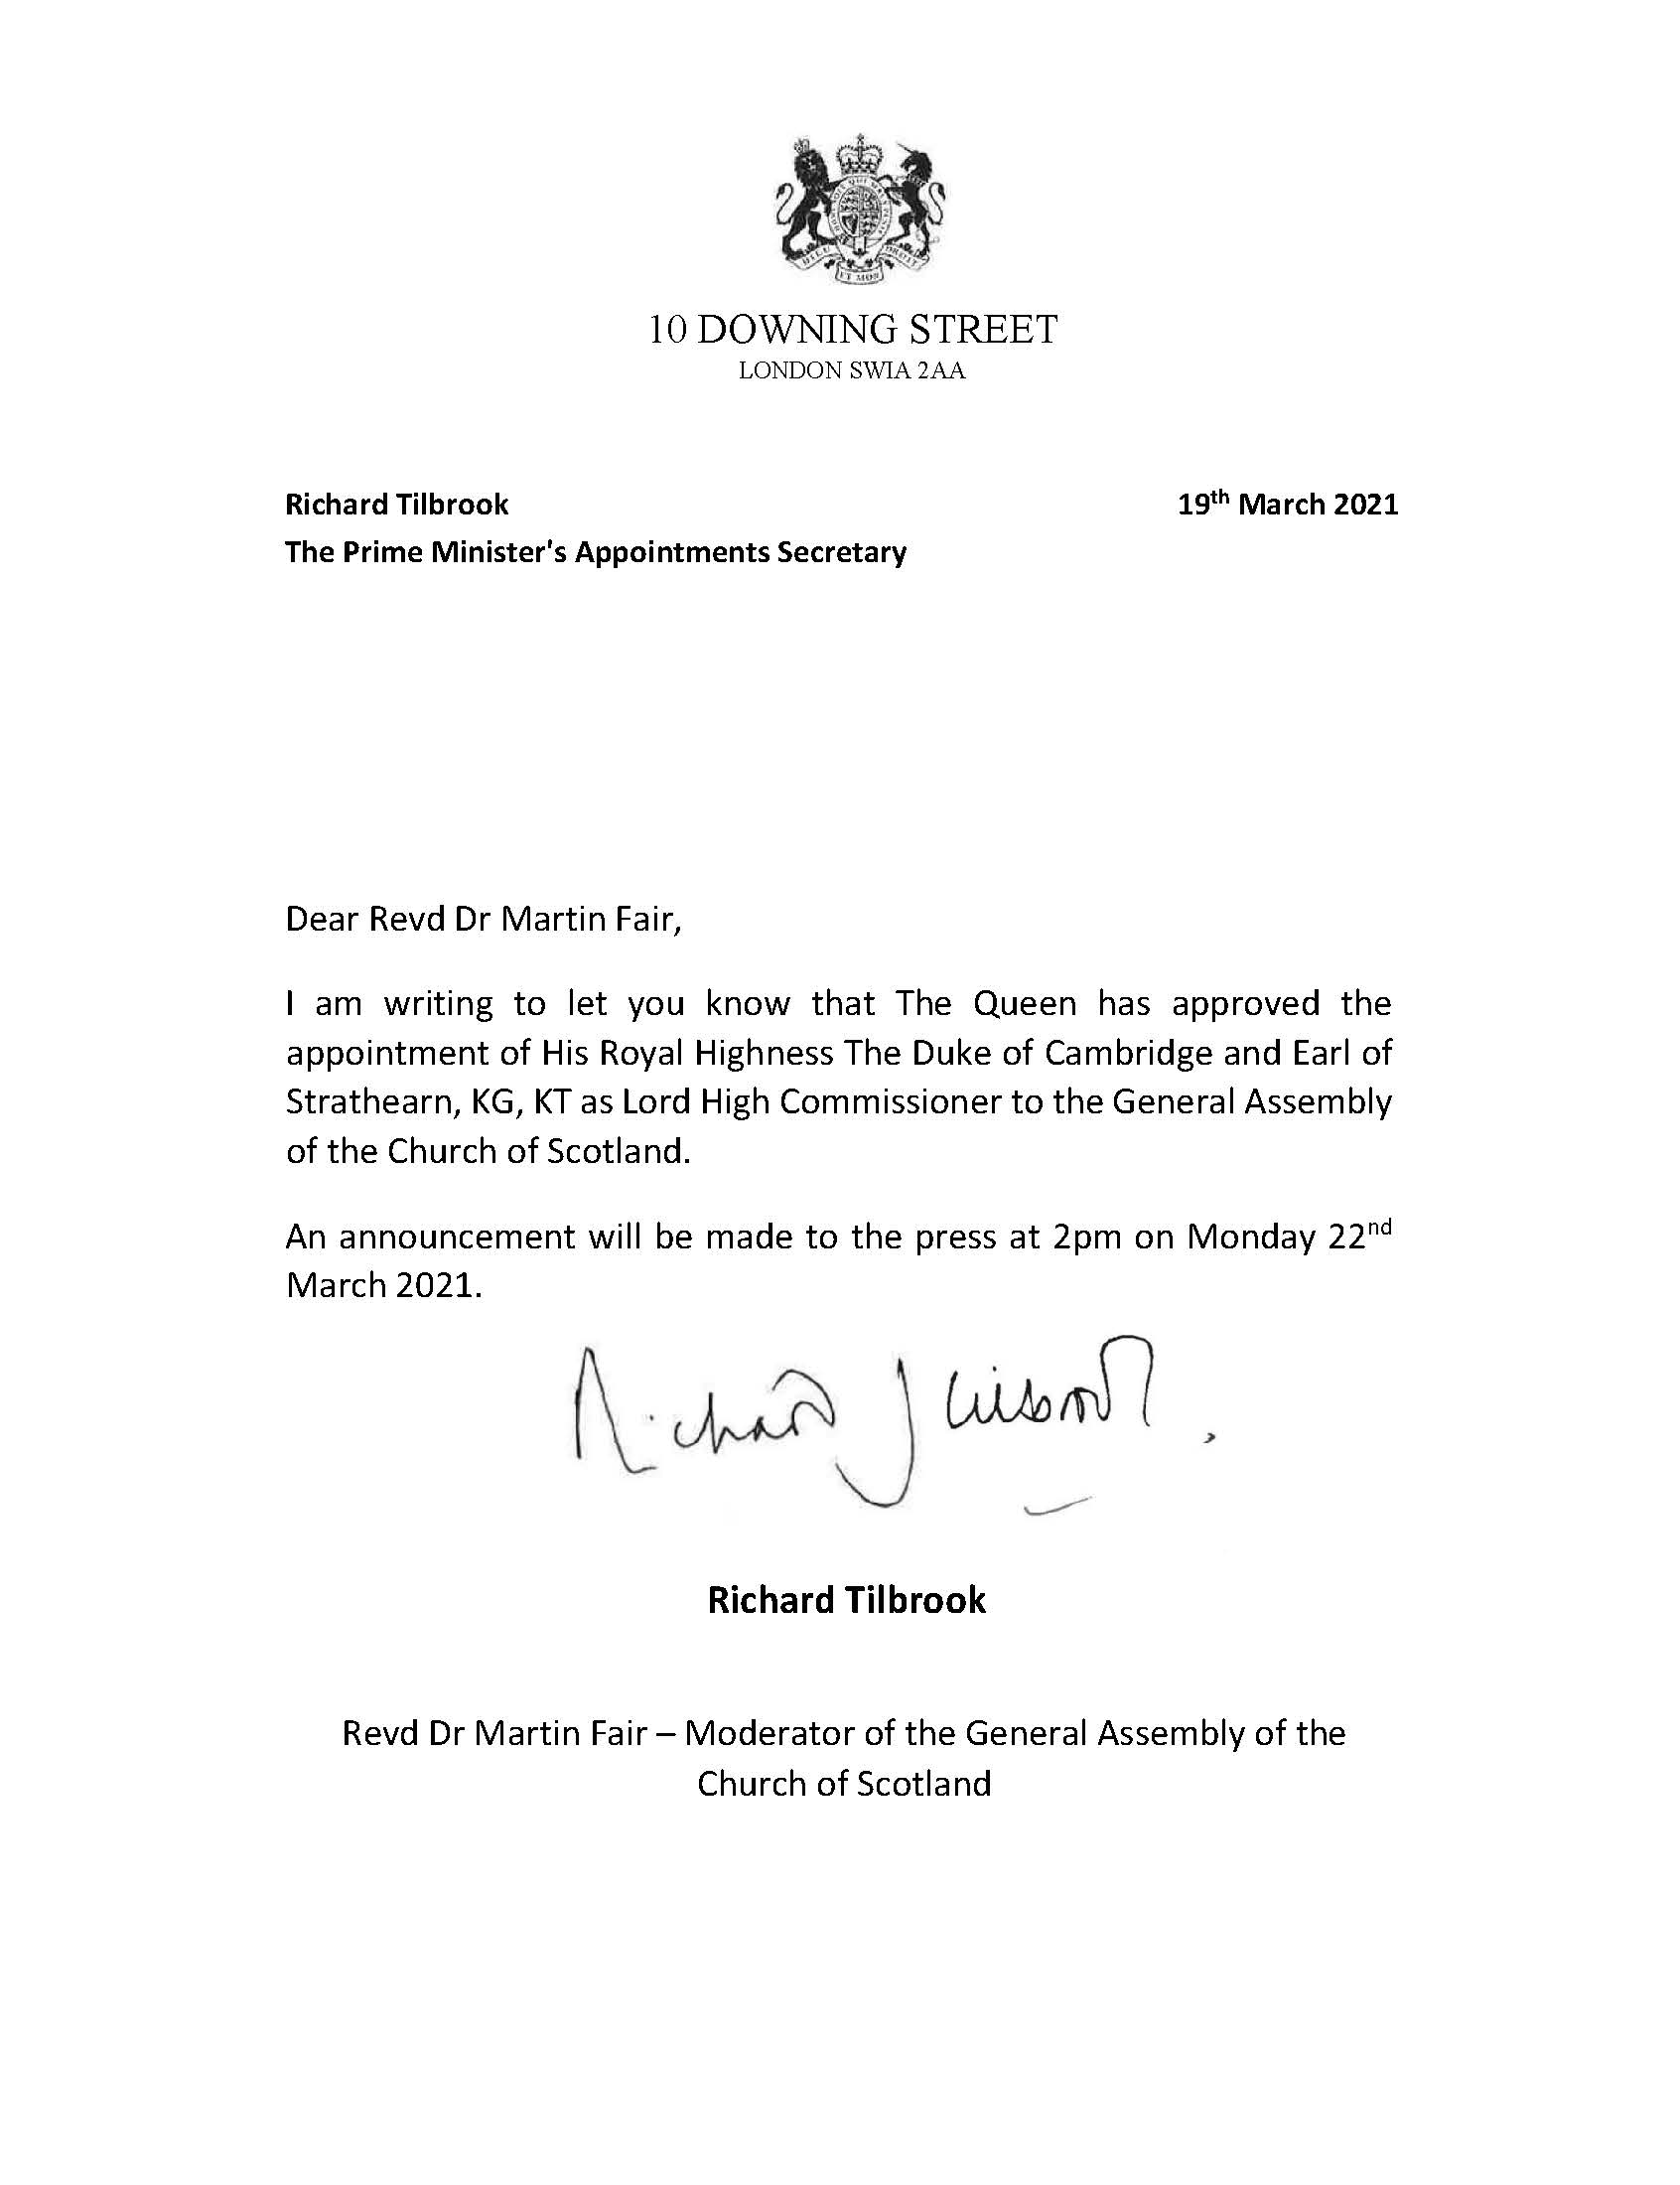 Announcement letter from 10 Downing Street